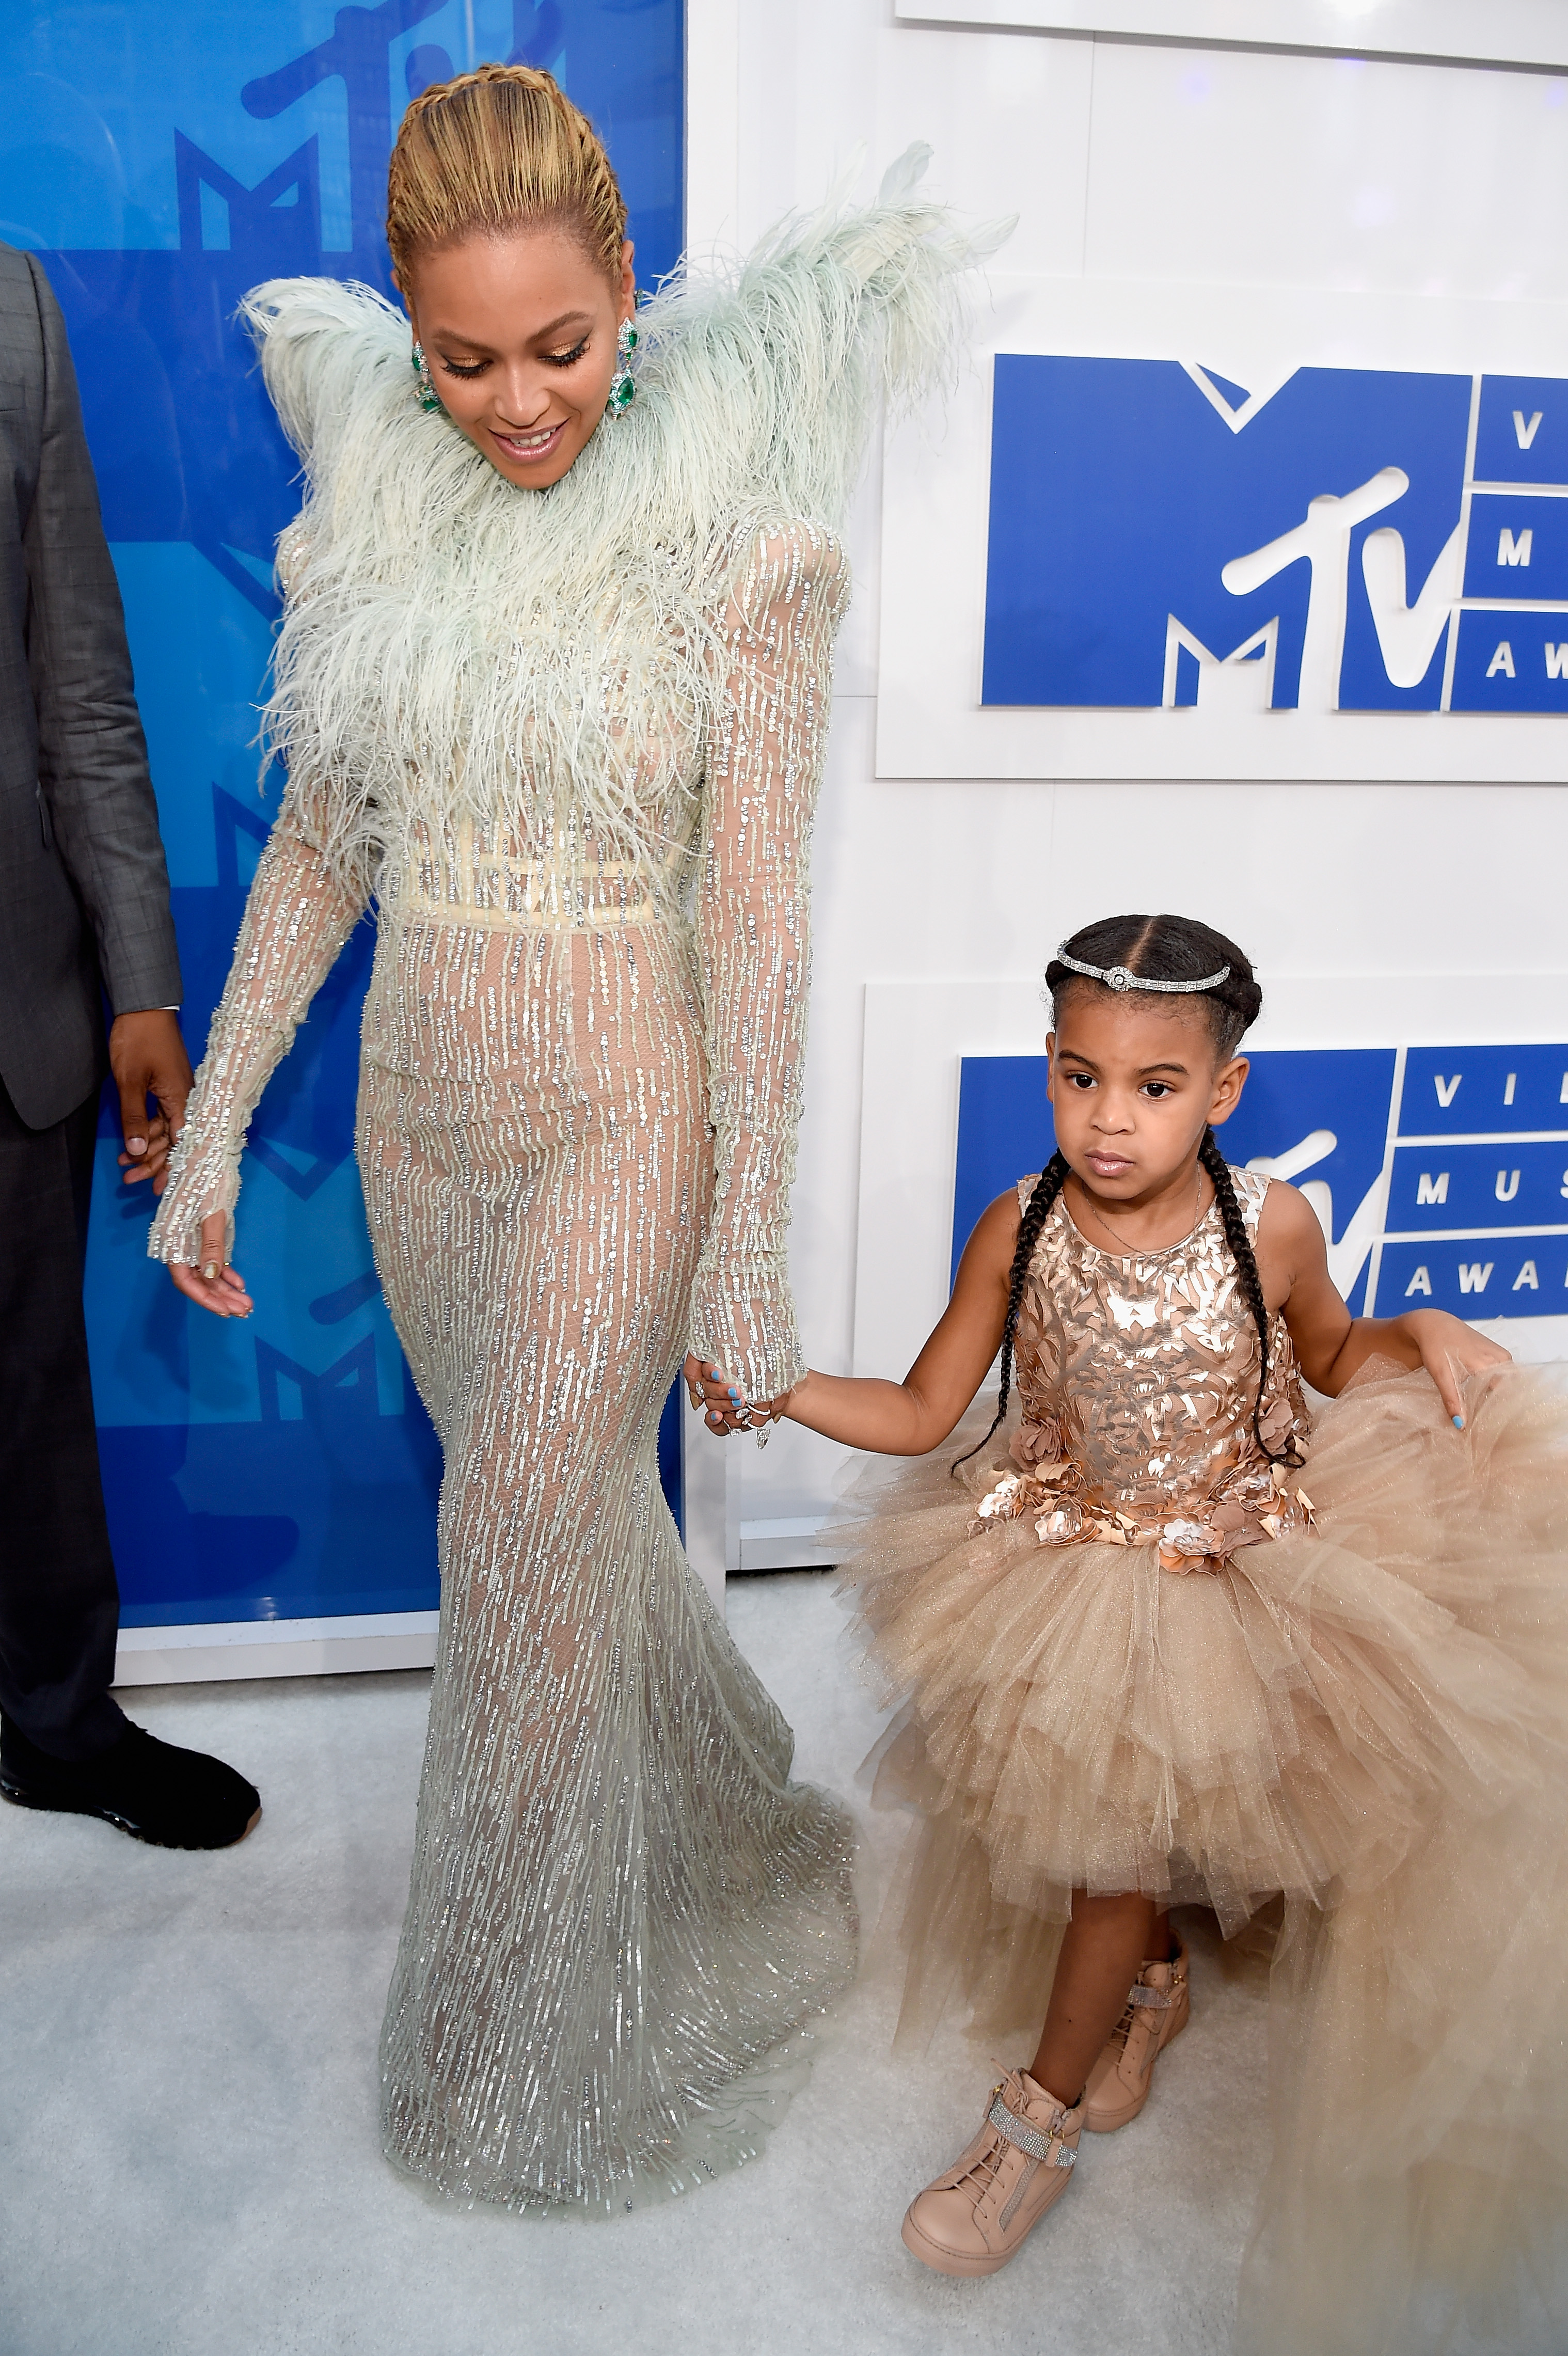 "<p>Beyoncé's daughter <a href=""https://style.nine.com.au/2018/03/19/09/29/beyonce-blue-ivy-wearable-gala-clothes-fashion"" target=""_blank"" draggable=""false"">Blue Ivy</a> is way cooler than any of us. That's a fact. </p> <p>When I was six years-old I wore hand-me-downs from my sisters and knew no different, but the daughter of Beyoncé and Jay Z will be having none of that. </p> <p>While<a href=""https://style.nine.com.au/2018/01/29/09/09/jay-z-beyonce-grammy-awards-outfits-fashion"" target=""_blank"" draggable=""false""> Beyoncé </a>herself has her own stylist, Marni Senofonte, she recently revealed her mini-me also has her own dedicated stylist and personal shopper.</p> <p>And who would expect anything less from the daughter of musical royalty?</p> <p>Queen Bey has enlisted the help of stylist <a href=""https://www.instagram.com/mmanuelamendez/?hl=en"" target=""_blank"">Manuel A. Mendez</a> to act as curator of Blue Ivy's wardrobe, and he's the genius behind  some of her most epic looks. </p> <p>At the 2017 Grammy Awards he chose a pink Gucci suit complete with a pink glitter clutch for Blue Ivy  - because that's the stuff little girl's dreams are made of. </p> <p>And more recently, Blue Ivy rocked a custom gold feathered dress and headpiece from Annakiki to attend the Wearable Art Gala last month in New York.</p> <p>Take a look at some of Mendez's standout Blue Ivy looks.</p>"